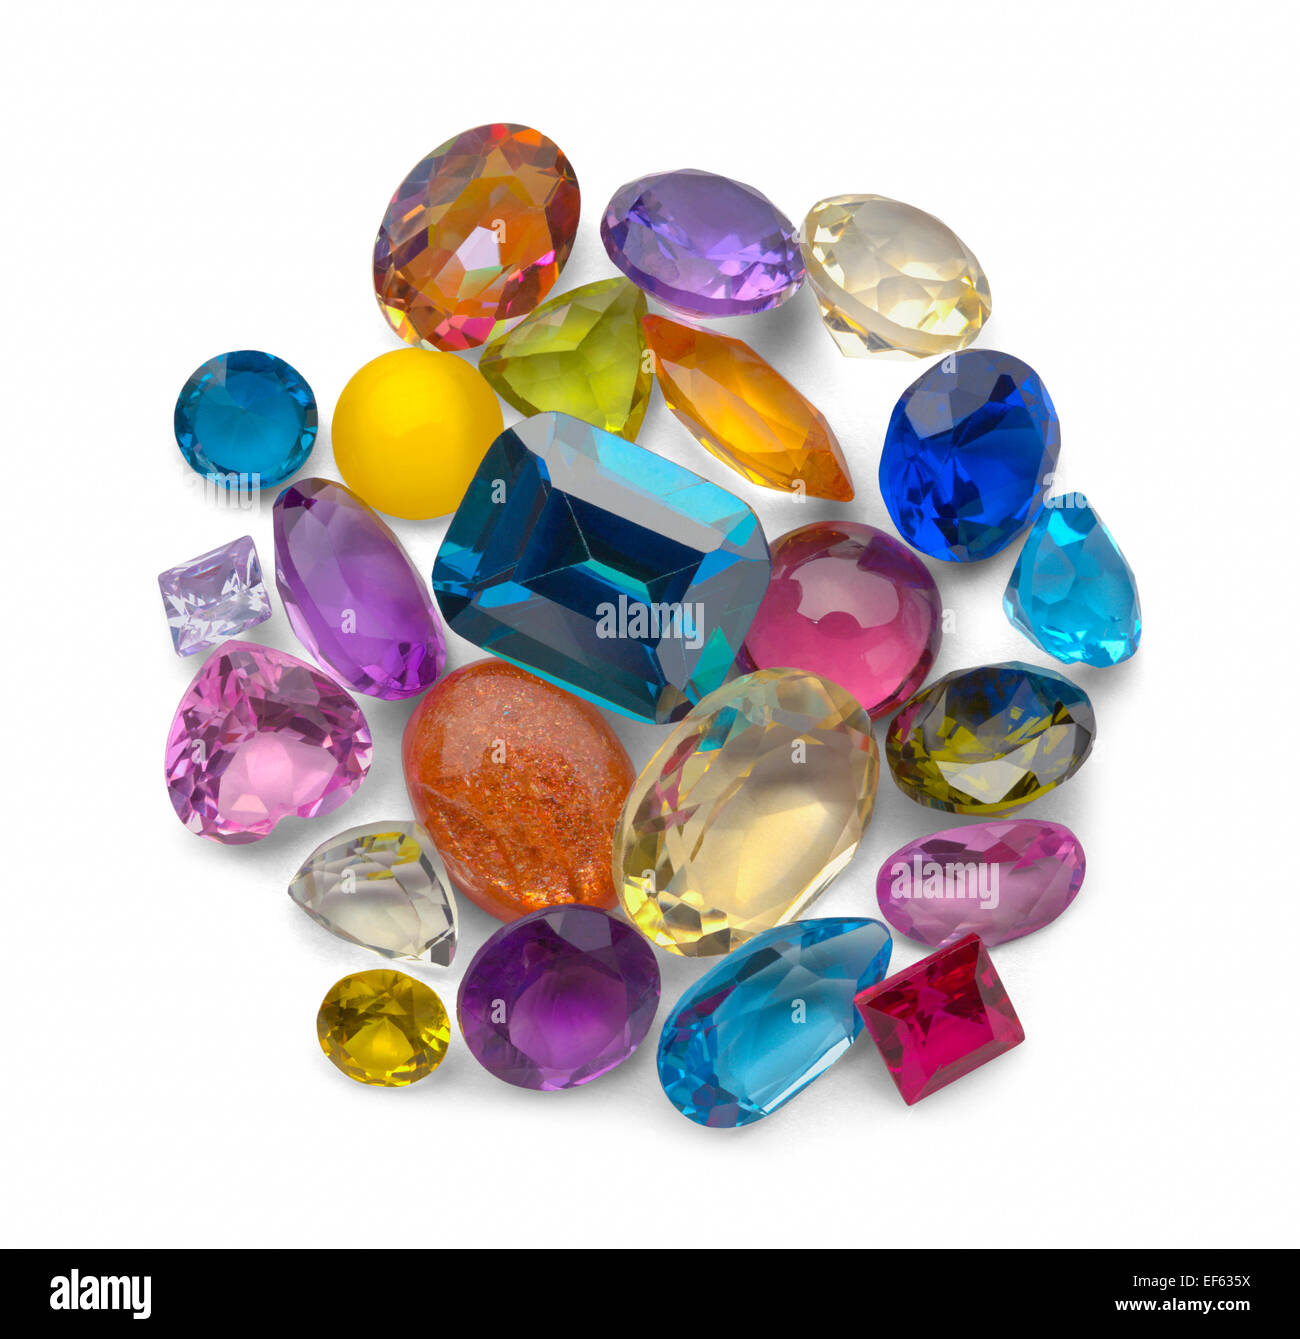 Loose Colorful Jewels Isolated on White Background. - Stock Image